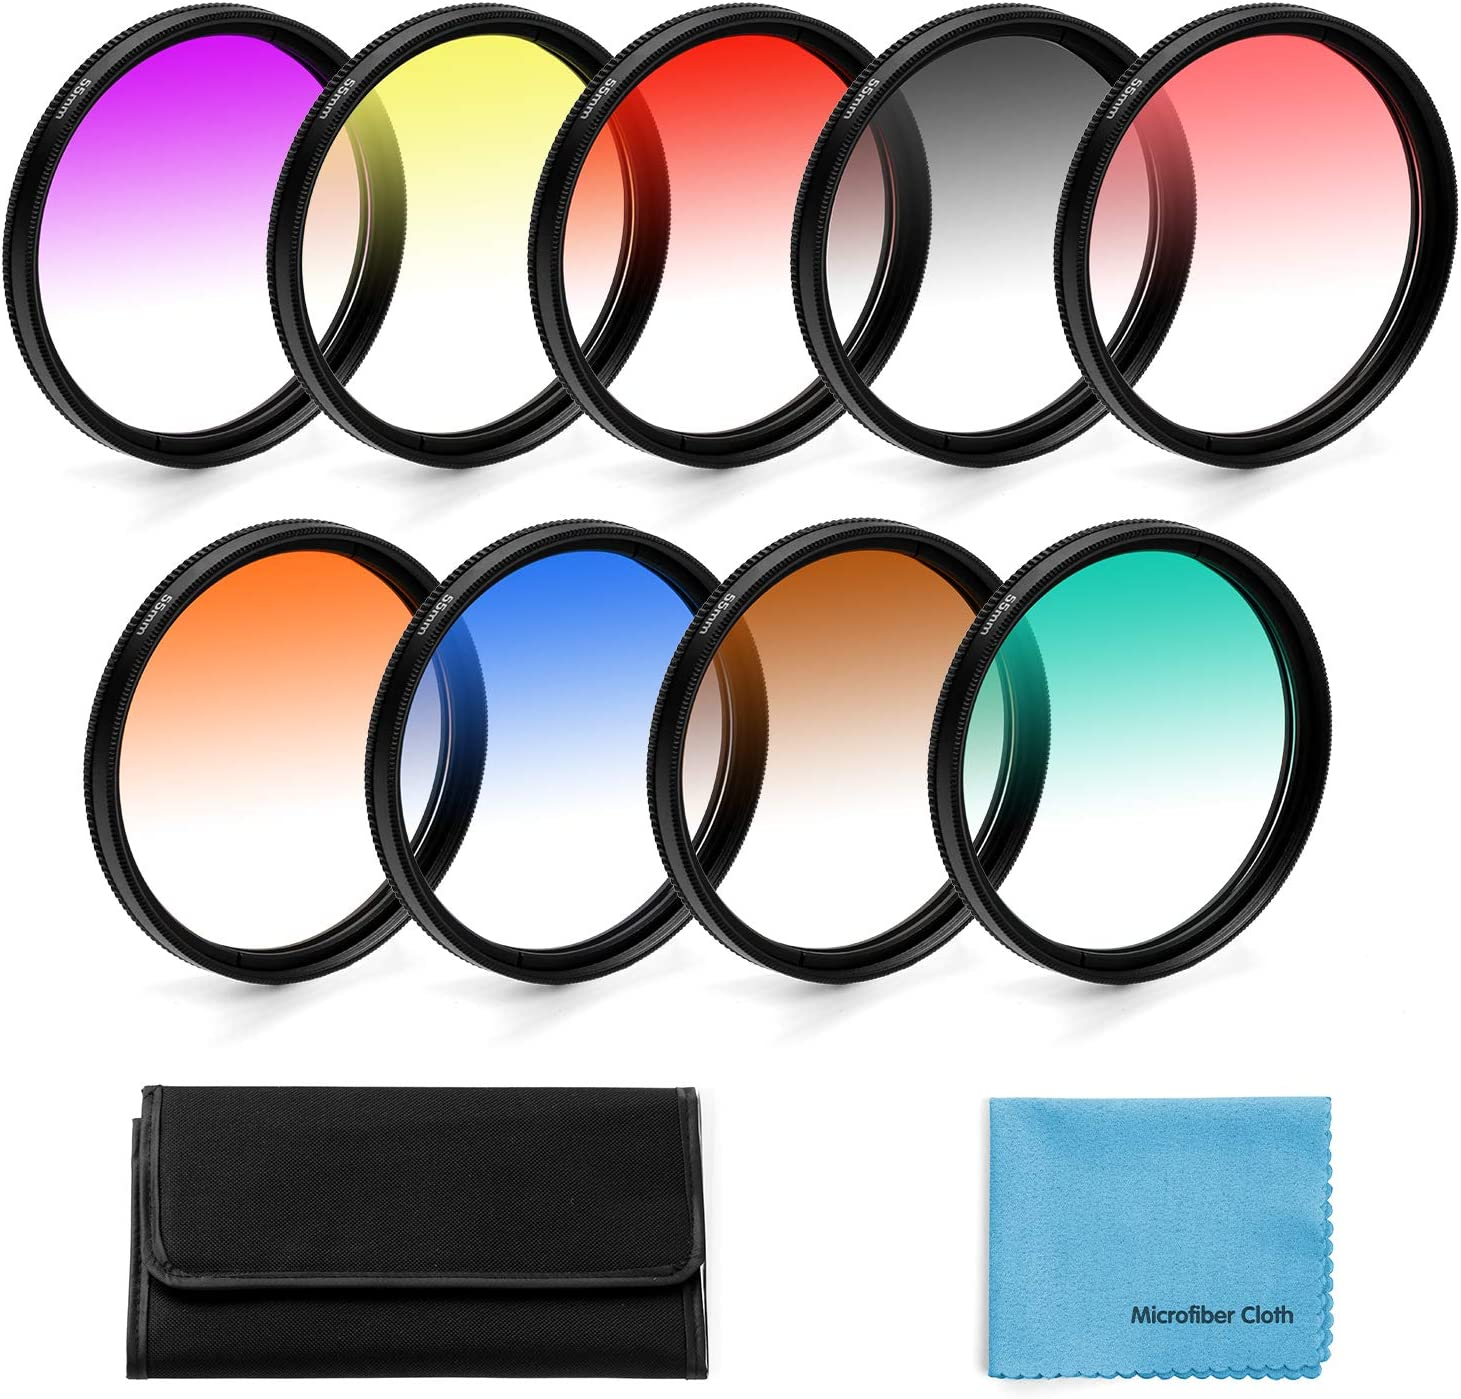 Credence 67mm Graduated Color Filters Kit 9 Fi Los Angeles Mall Colour Gradual Lens Pieces